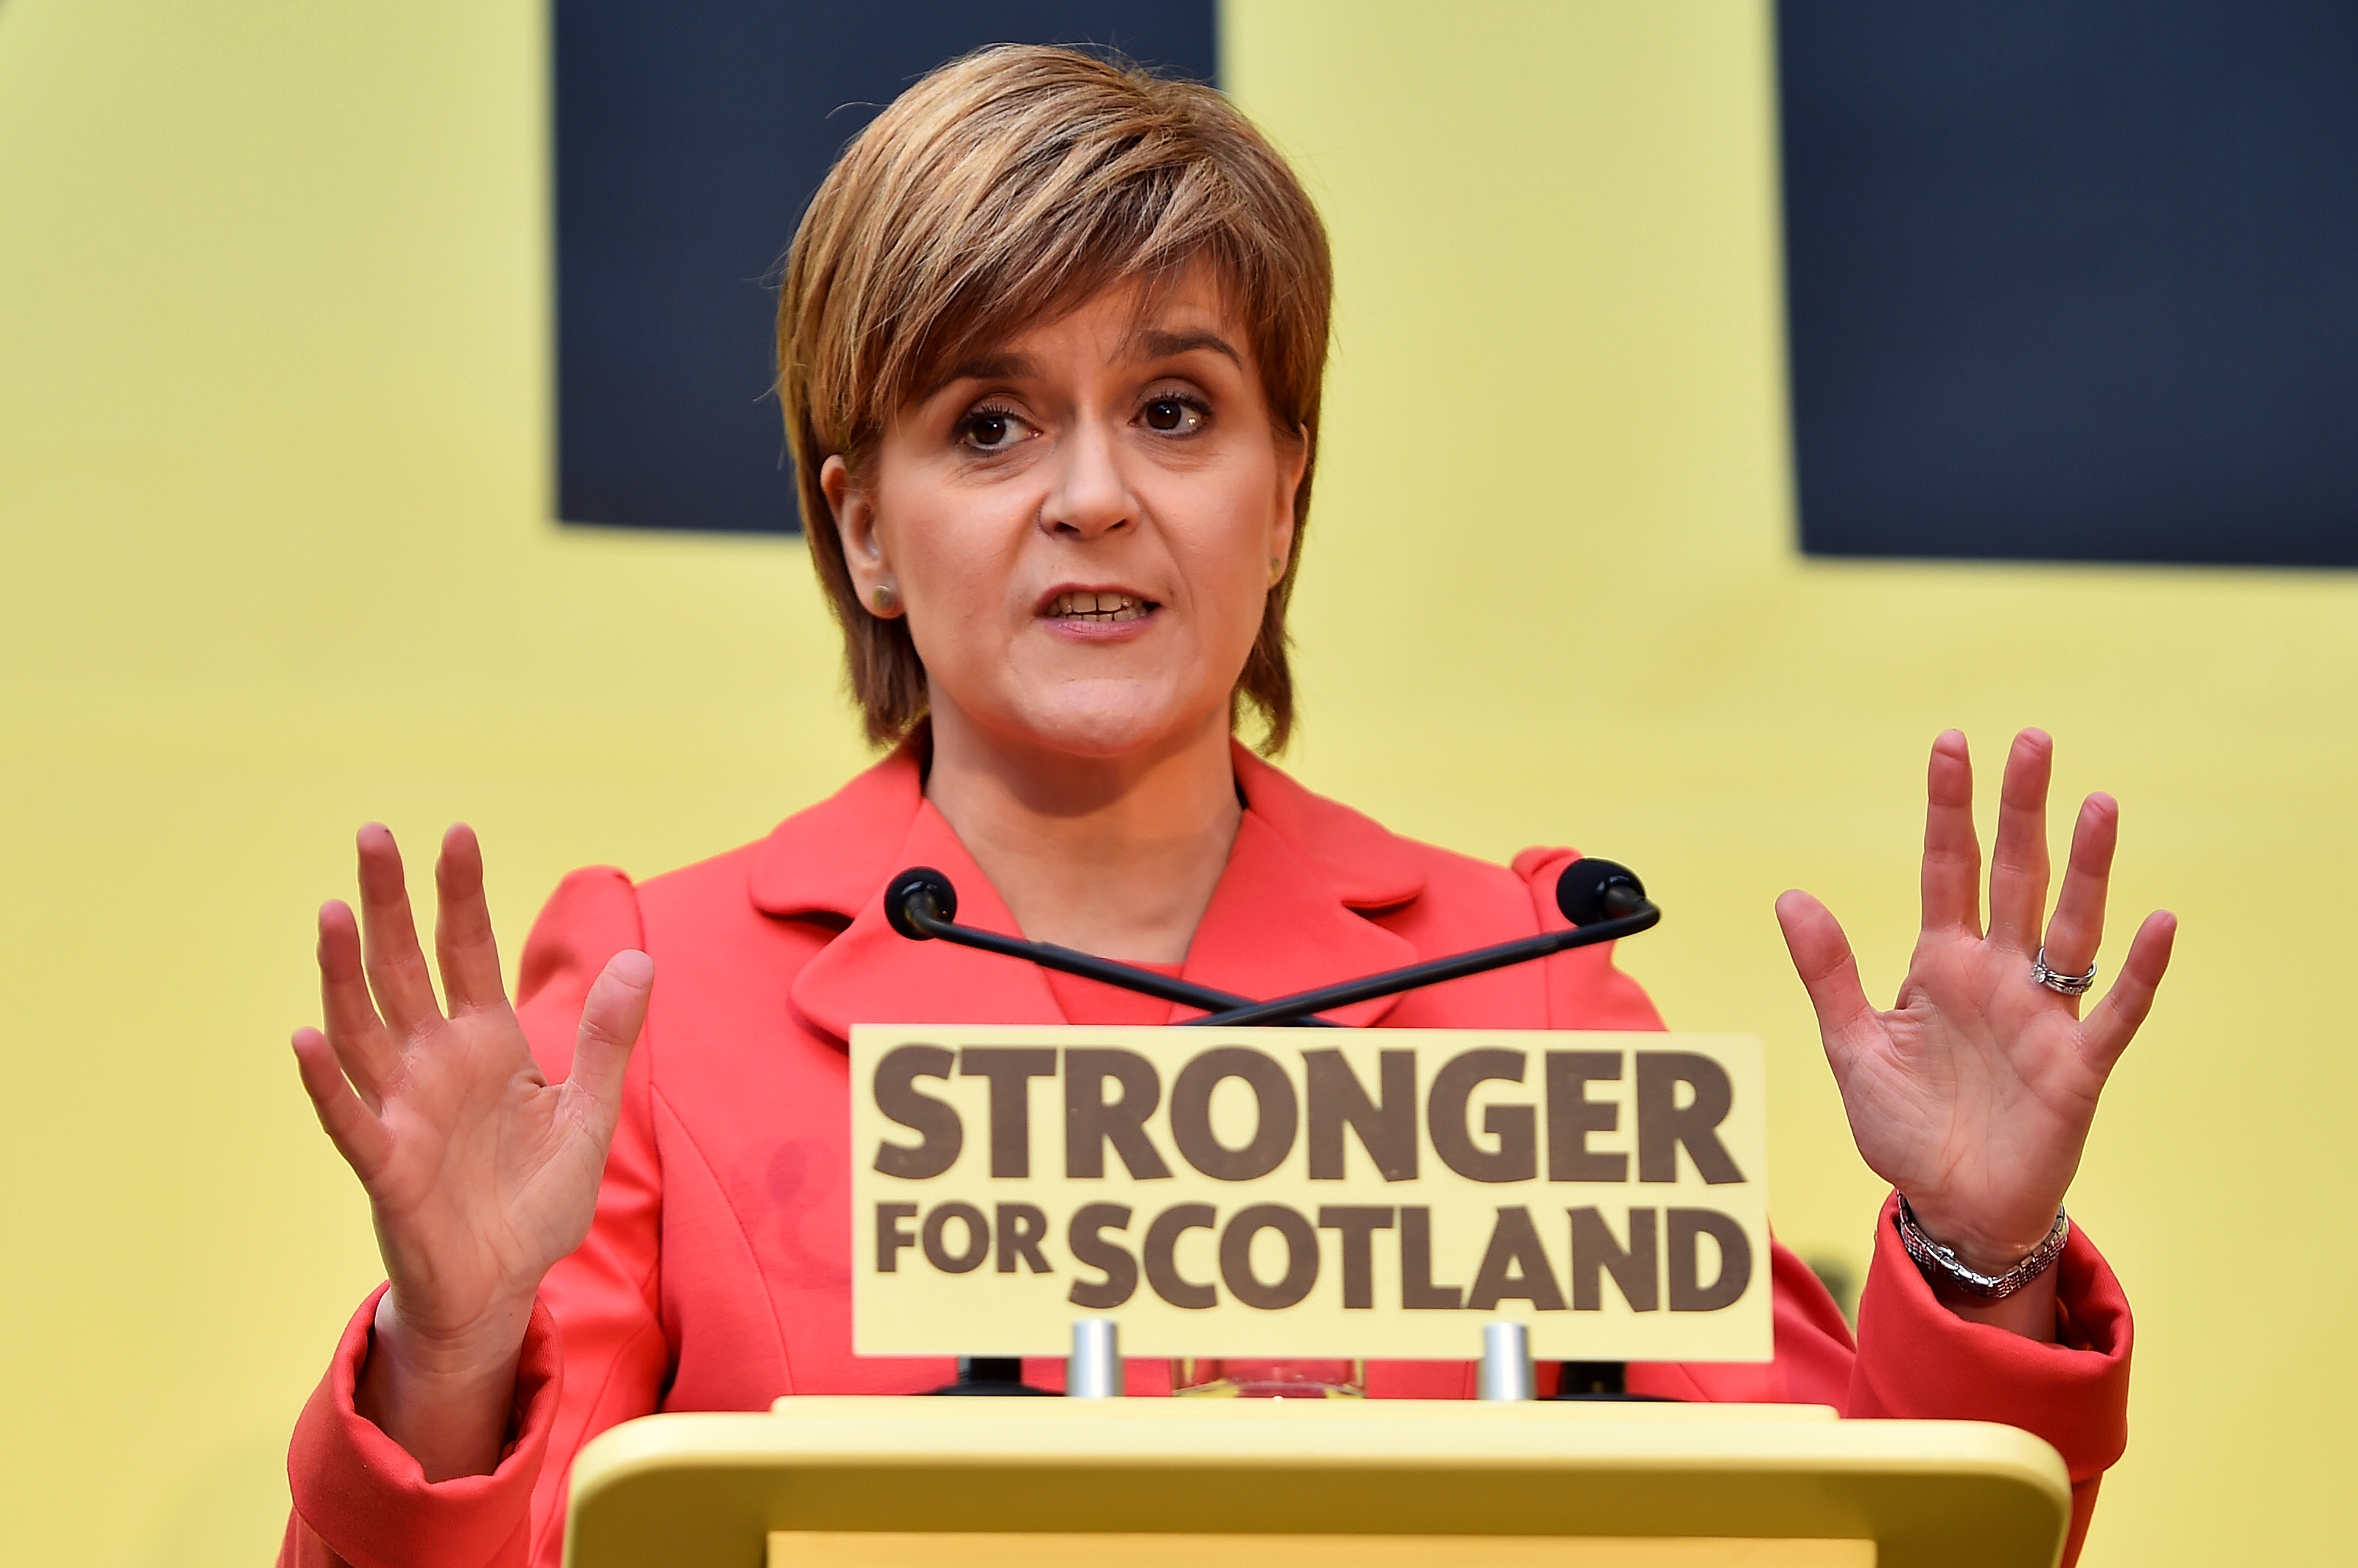 SNP leader Nicola Sturgeon launches the Scottish National Party manifesto at the Edinburgh International Climbing Arena, EICA Ratho, on April 20, 2015 in Edinburgh, Scotland